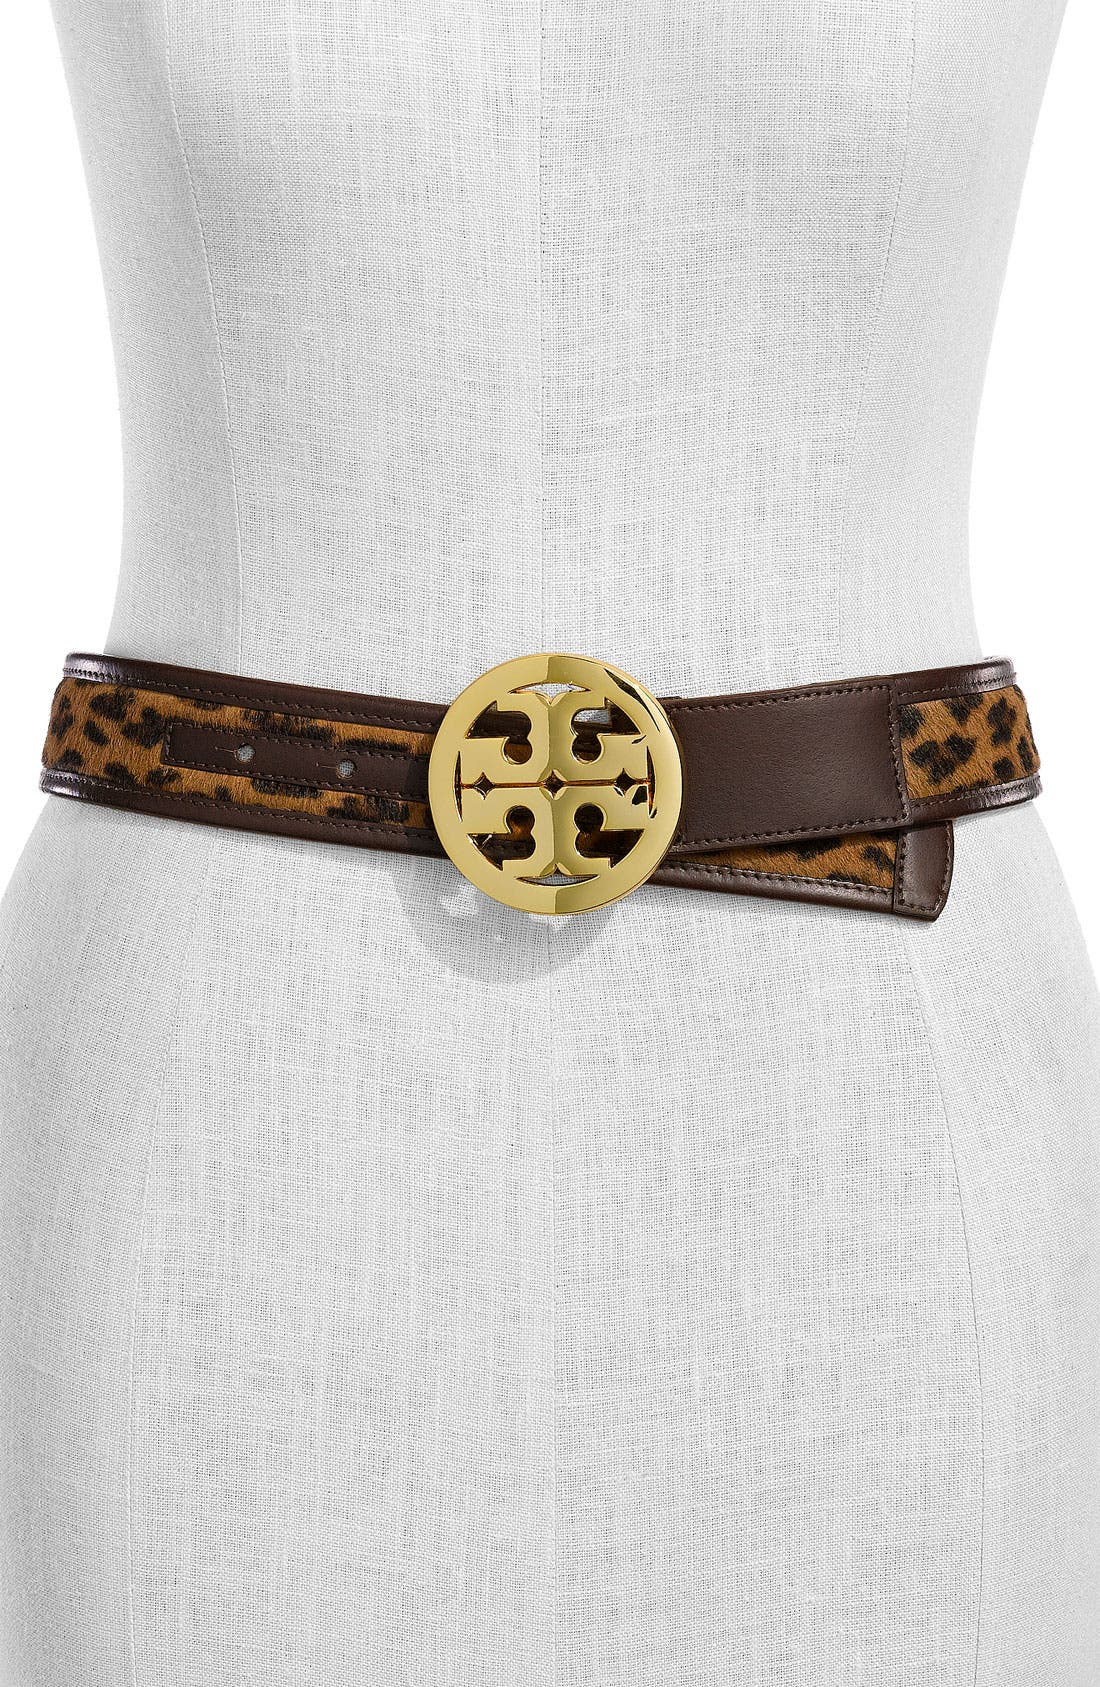 Alternate Image 1 Selected - Tory Burch 'Logo' Leather Belt